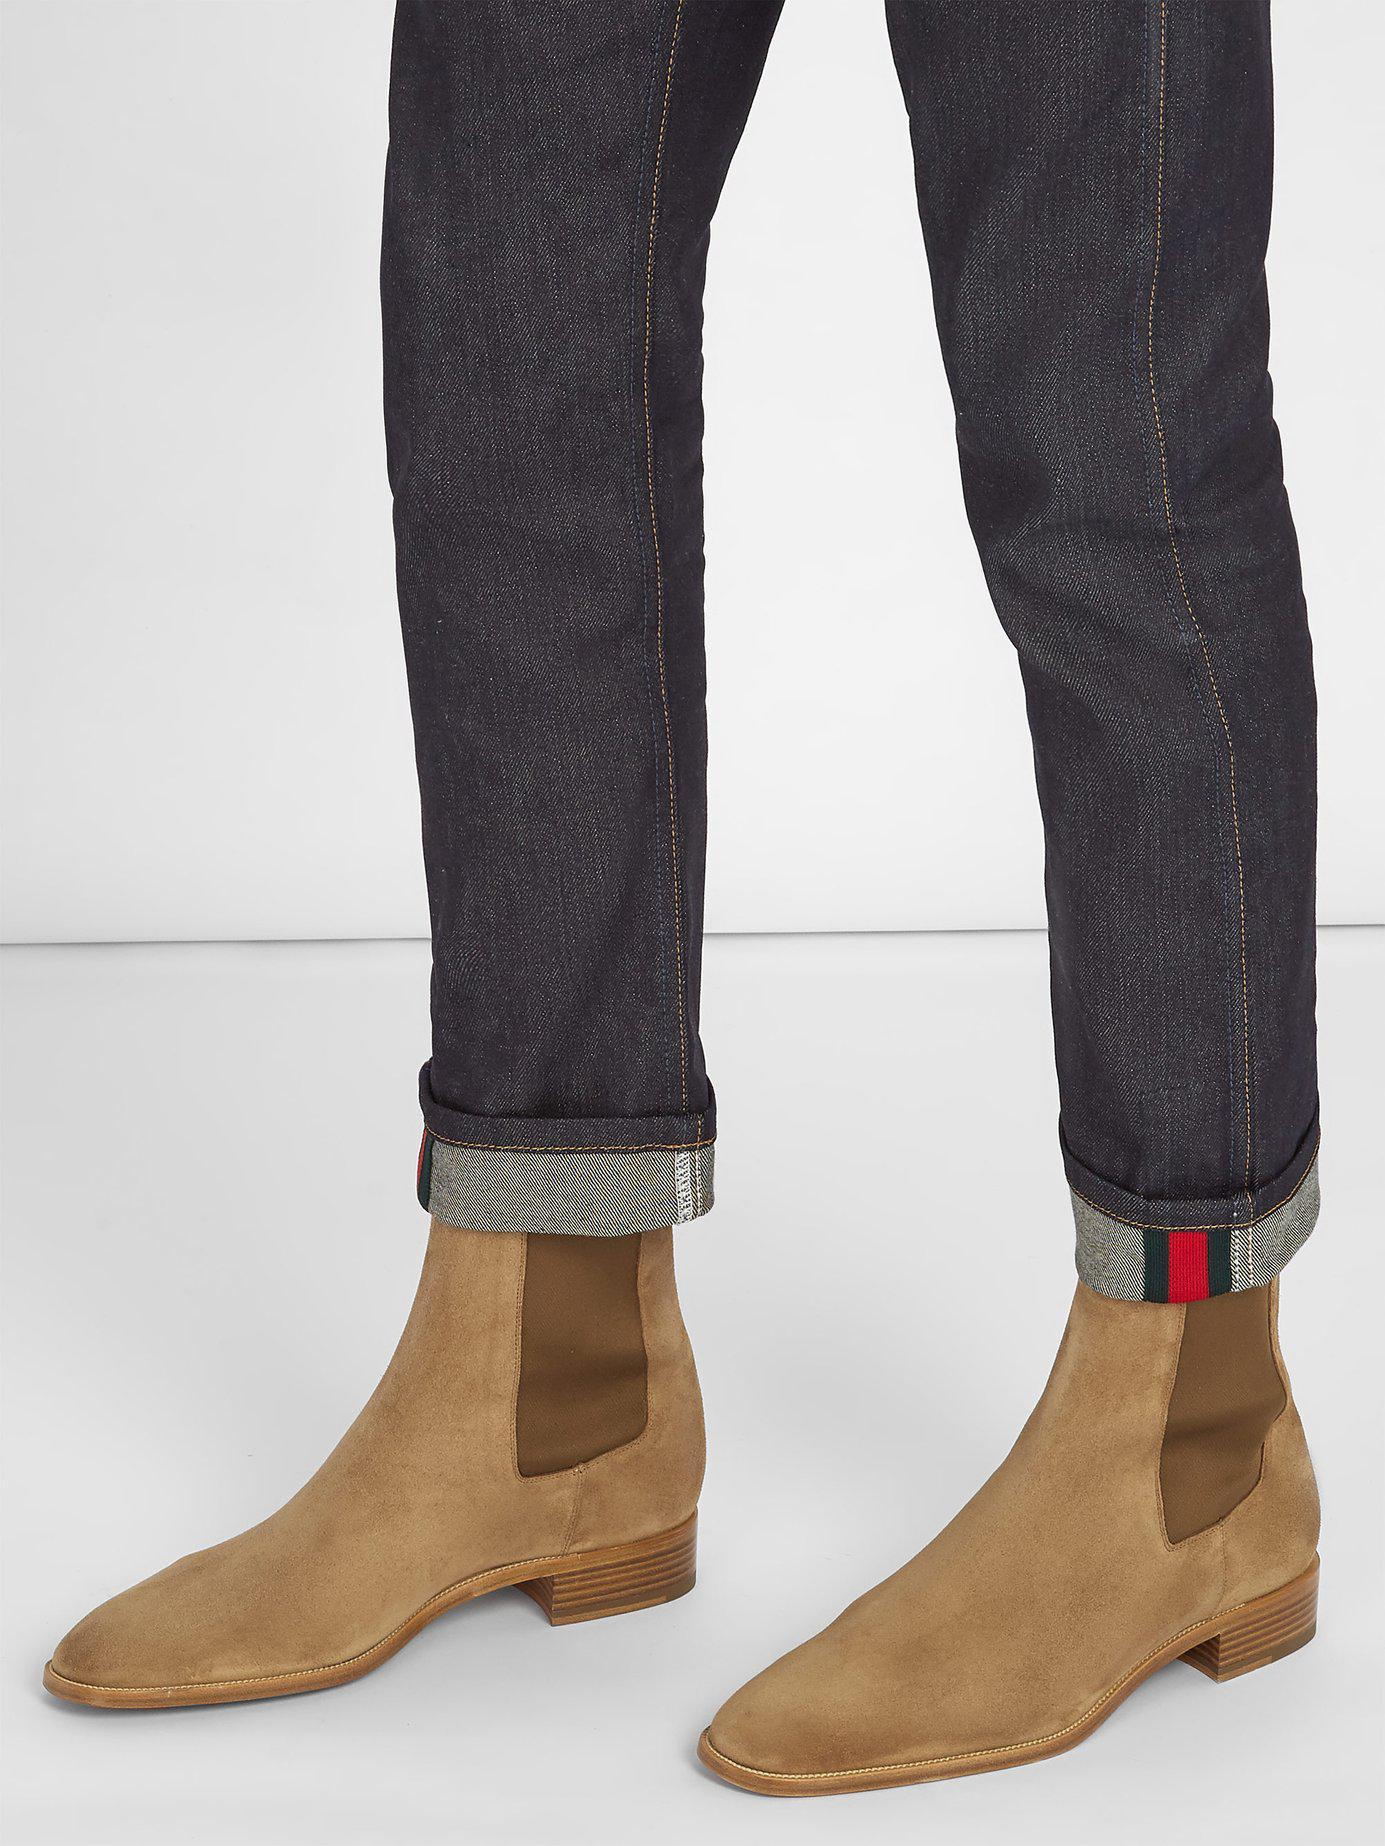 bb9e405aeaf Christian Louboutin Natural Samson Suede Chelsea Boots for men